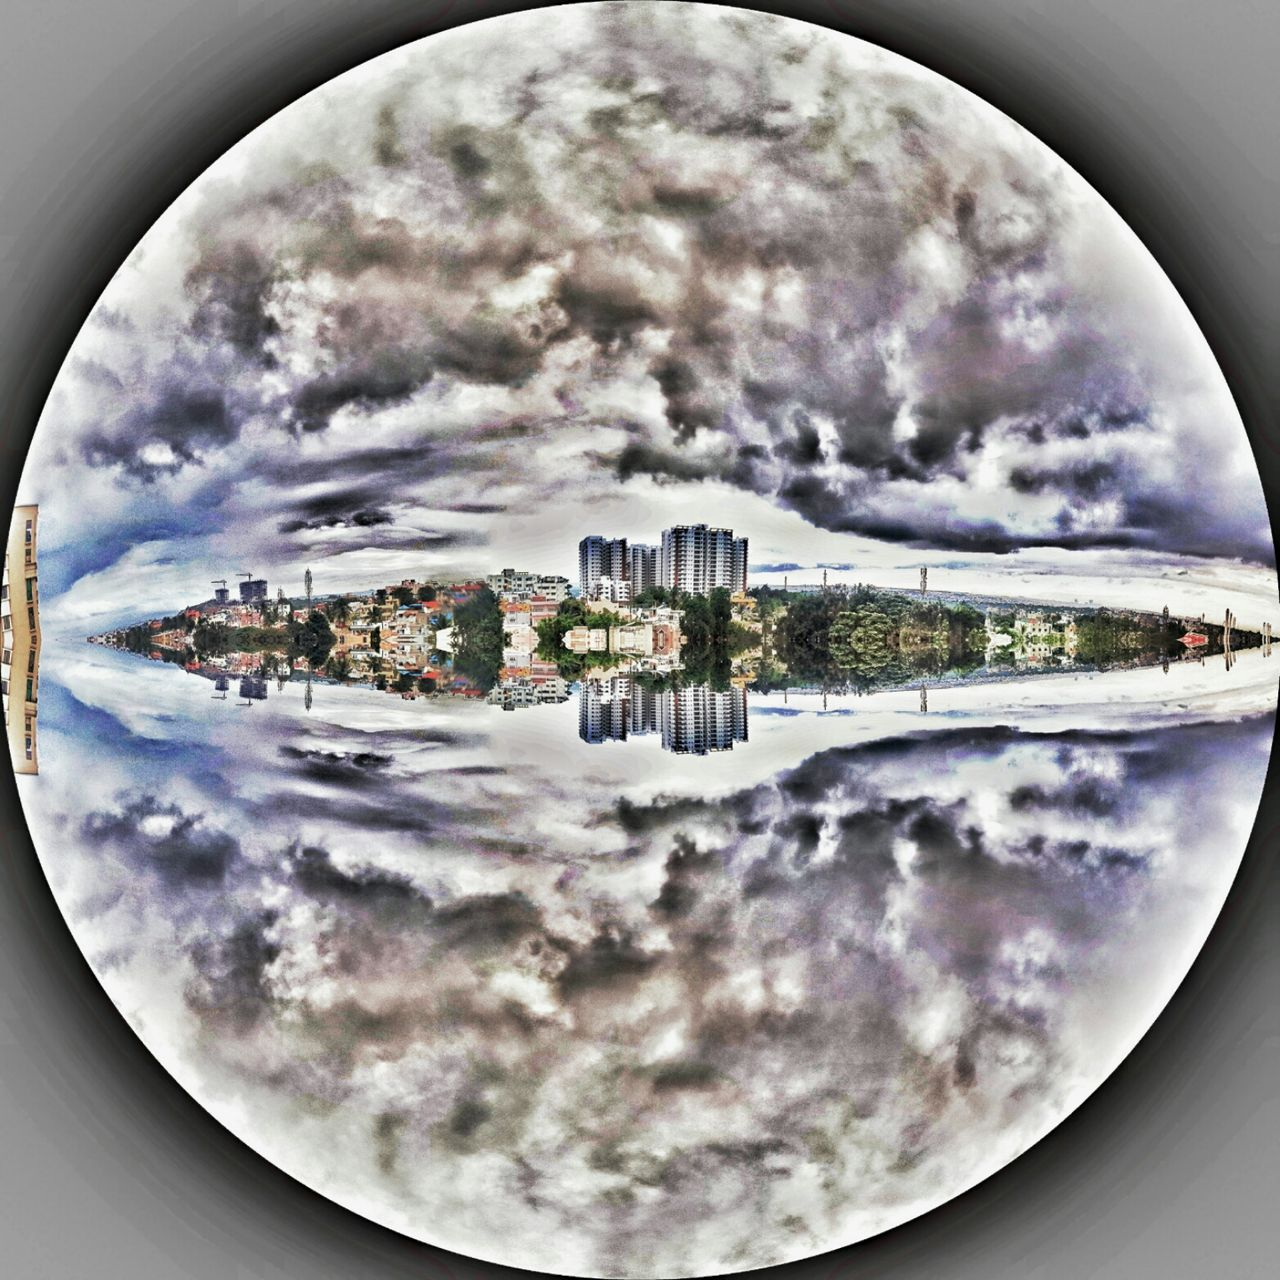 sky, reflection, water, cloud - sky, no people, architecture, built structure, fish-eye lens, indoors, building exterior, day, close-up, city, nature, cityscape